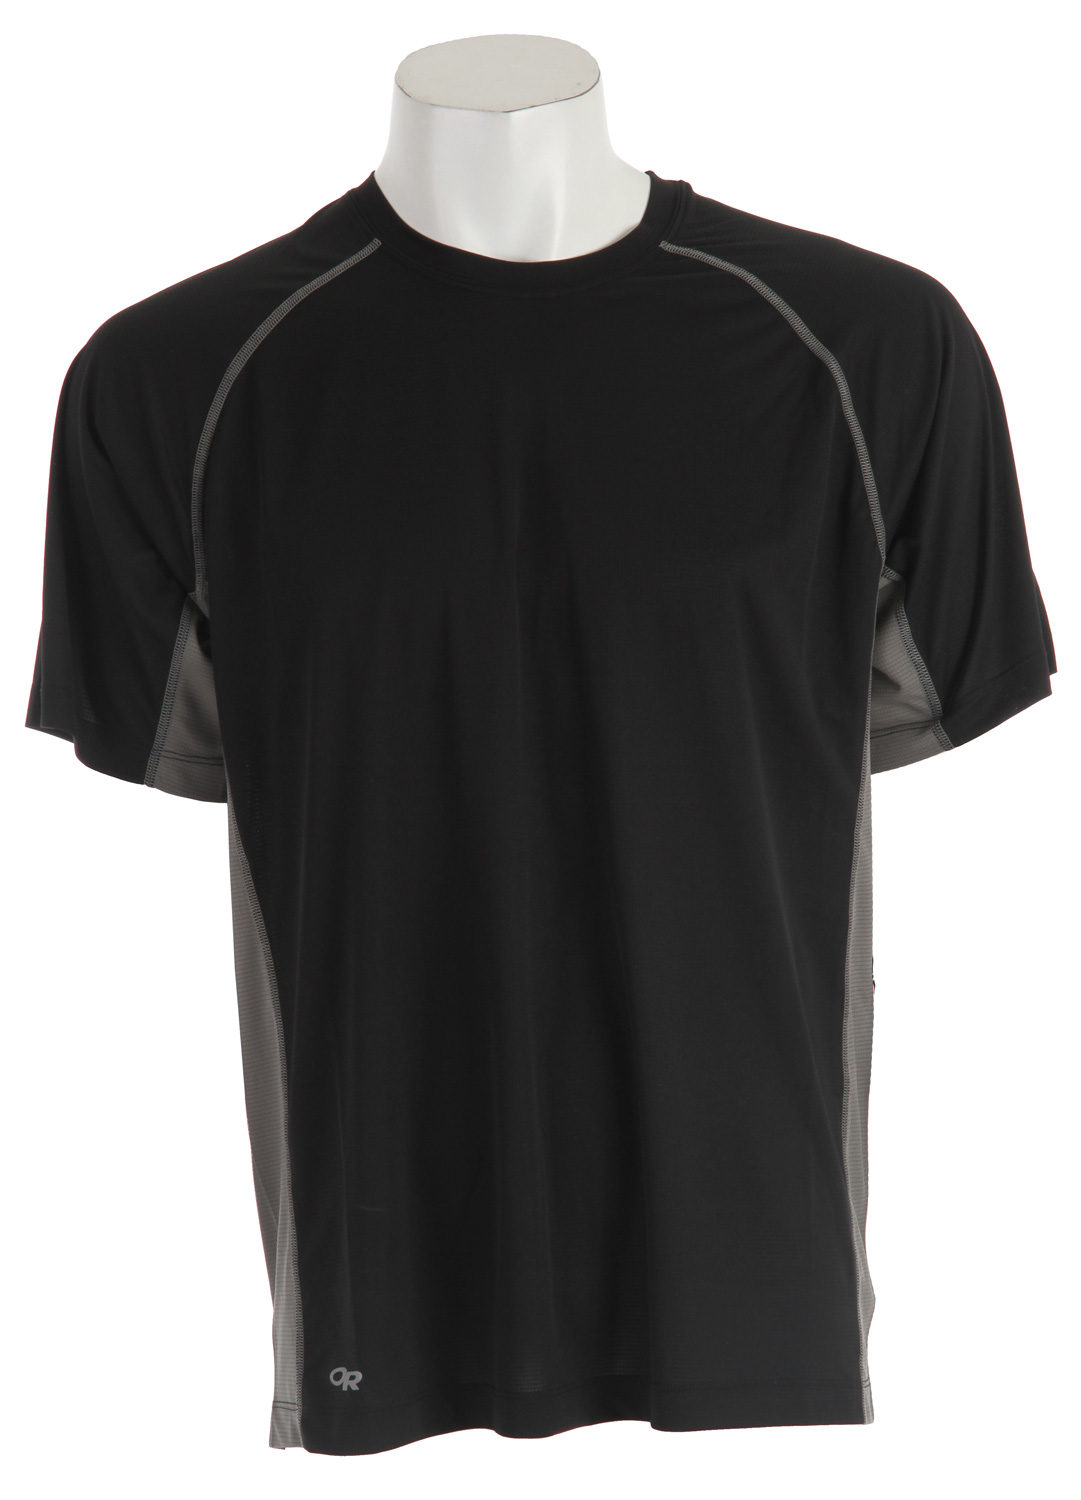 Fitness Pace your run through sunny basins and shaded forests in this light, trail-oriented tee. Polyester AirVent&trade fabric manages moisture and provides UPF 15 sun protection. Flat-seam construction reduces chafing and Polygiene odor control keeps it fresh whether it's your second or tenth day out. Key Features of the Outdoor Research Echo Duo T-Shirt: Lightweight, polyester AirVent fabric dries quickly and manages moisture; UPF15 Polygiene active odor control Flat-seam construction reduces chafing Raglan sleeves Reflective tape at back of neck Avg. Weight (oz./g): 4.0 / 113(size large) - $20.95